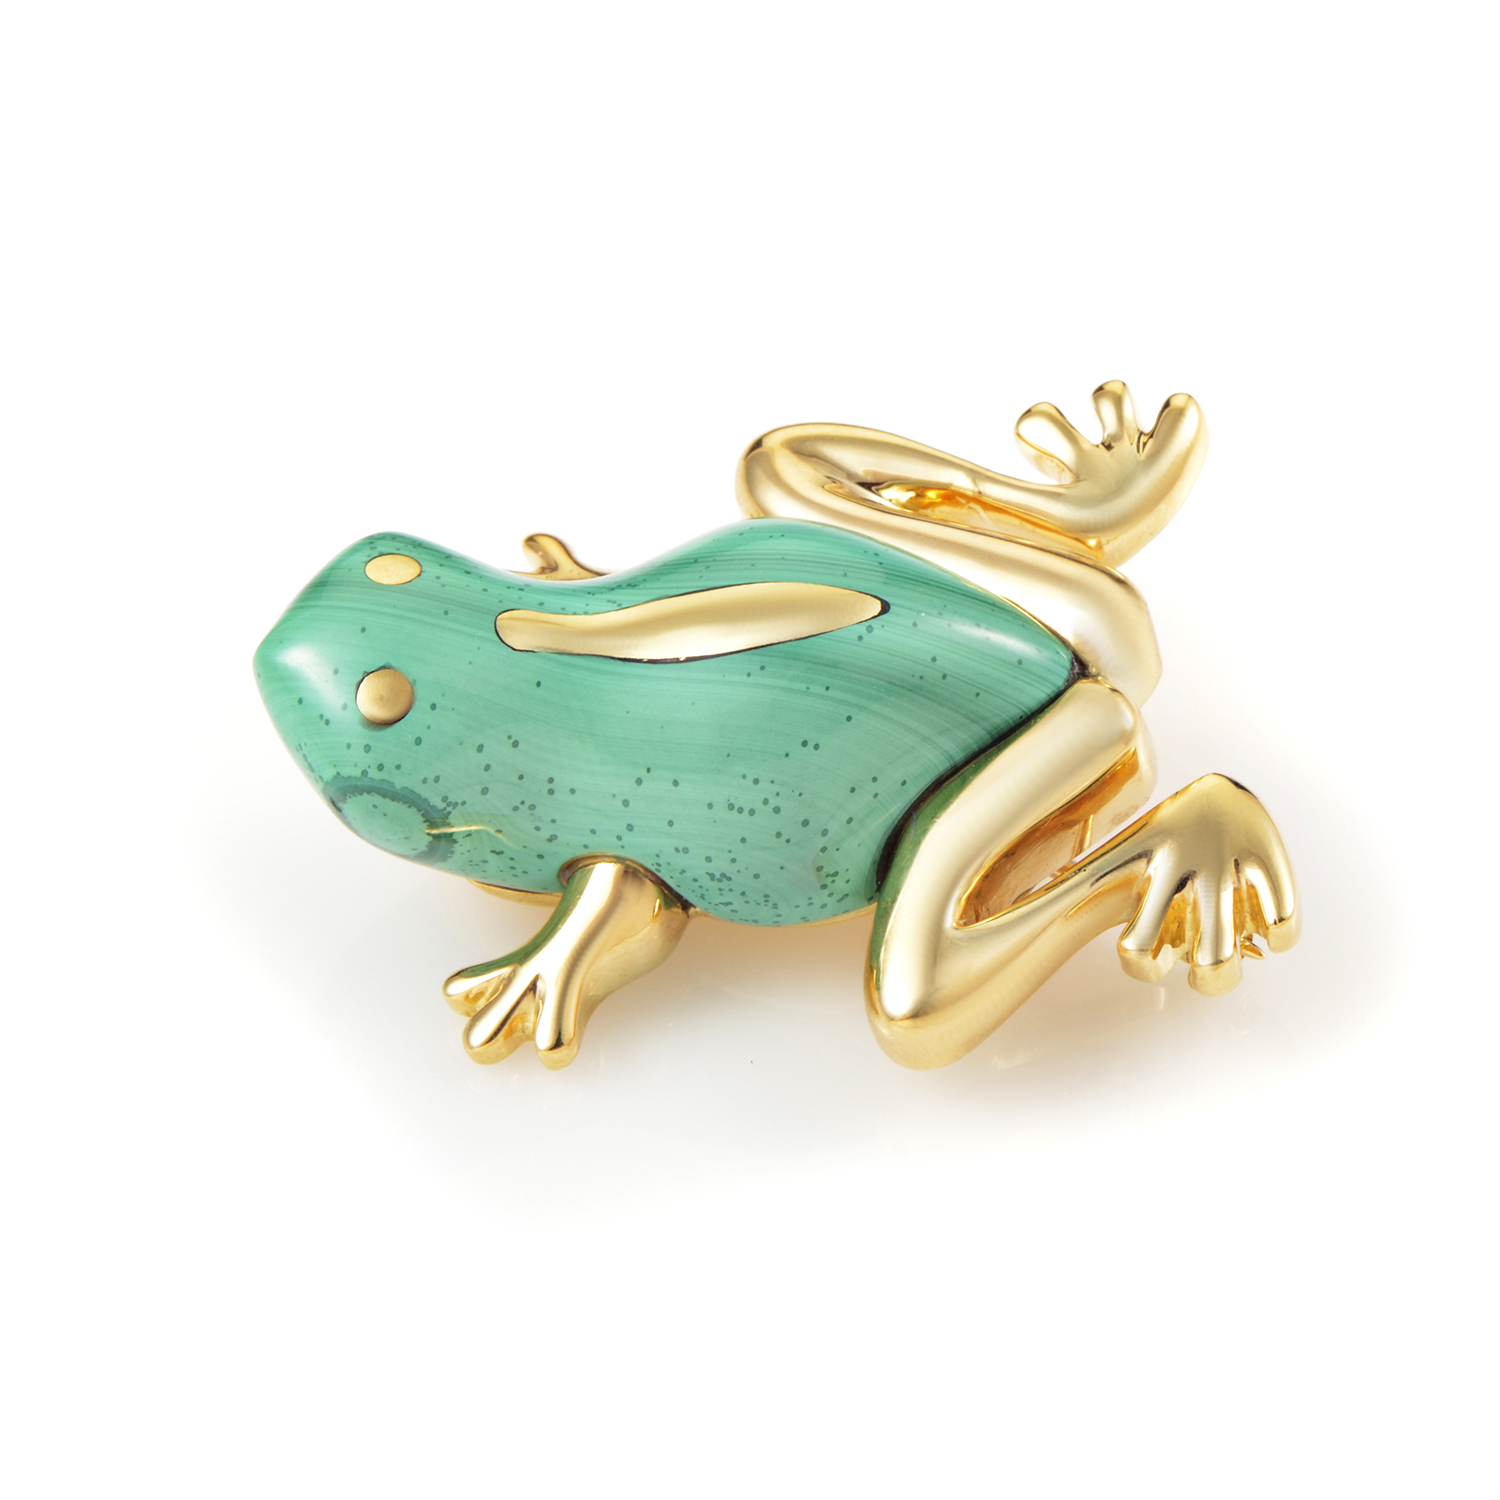 Tiffany & Co. Women's 18K Yellow Gold Malachite Frog Brooch AK1B3321